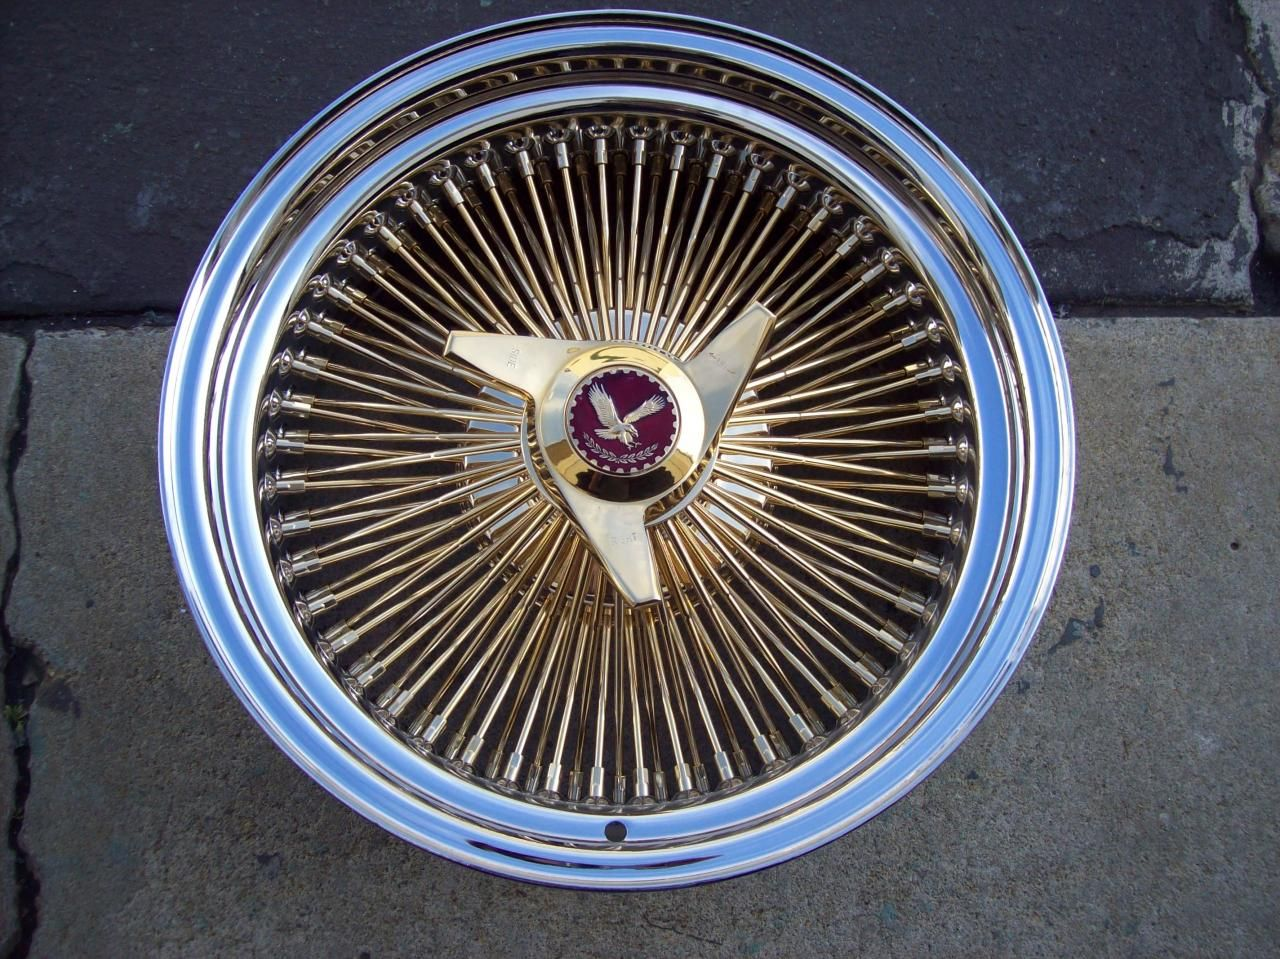 Lowrider rims 4 sale - Spoke Rims Copyright 2010 Wire Wheel King All Rights Reserved